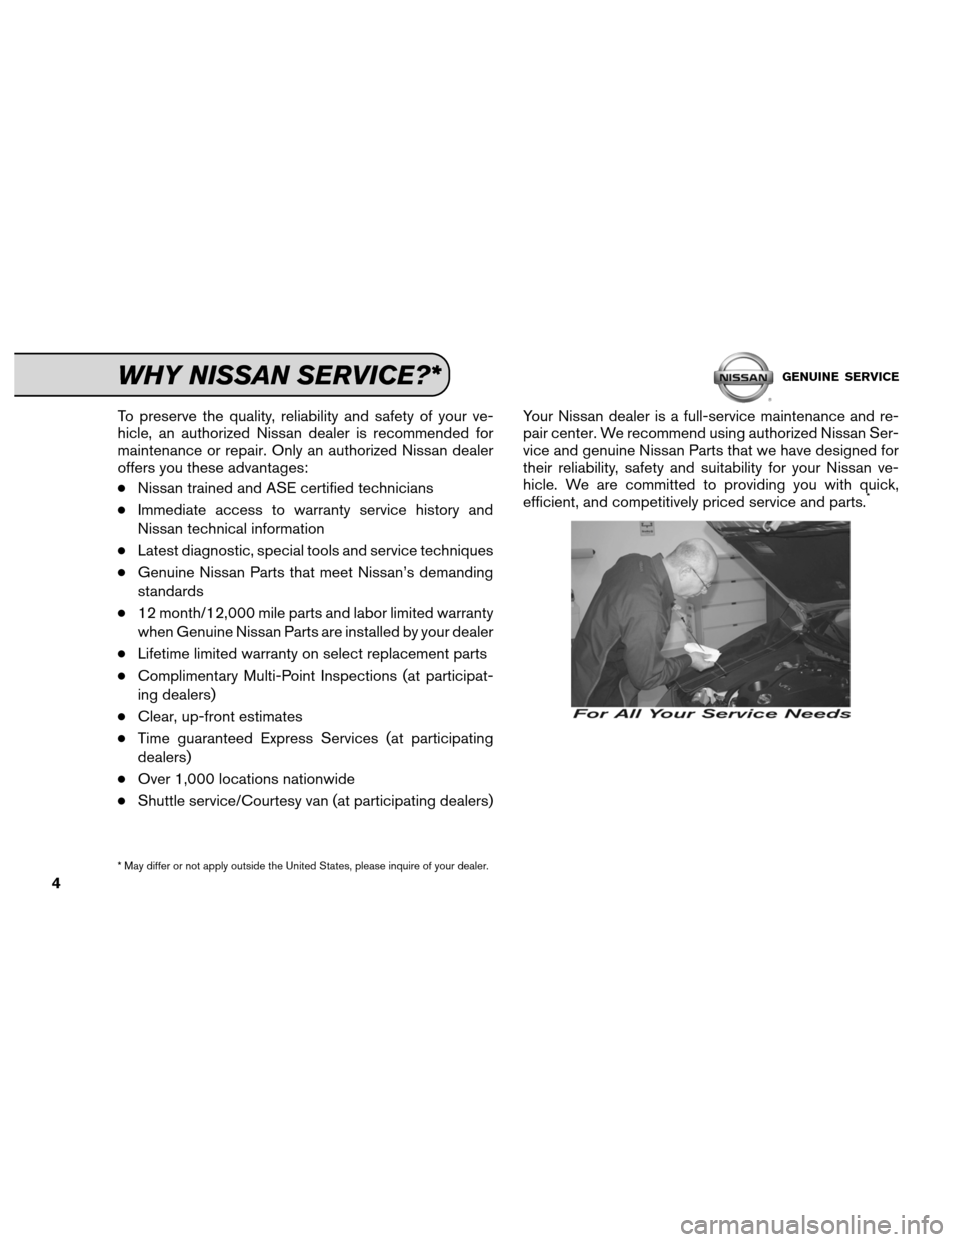 NISSAN VERSA 2012 1.G Service And Maintenance Guide To preserve the quality, reliability and safety of your ve- hicle, an authorized Nissan dealer is recommended for maintenance or repair. Only an authorized Nissan dealer offers you these advantages: �